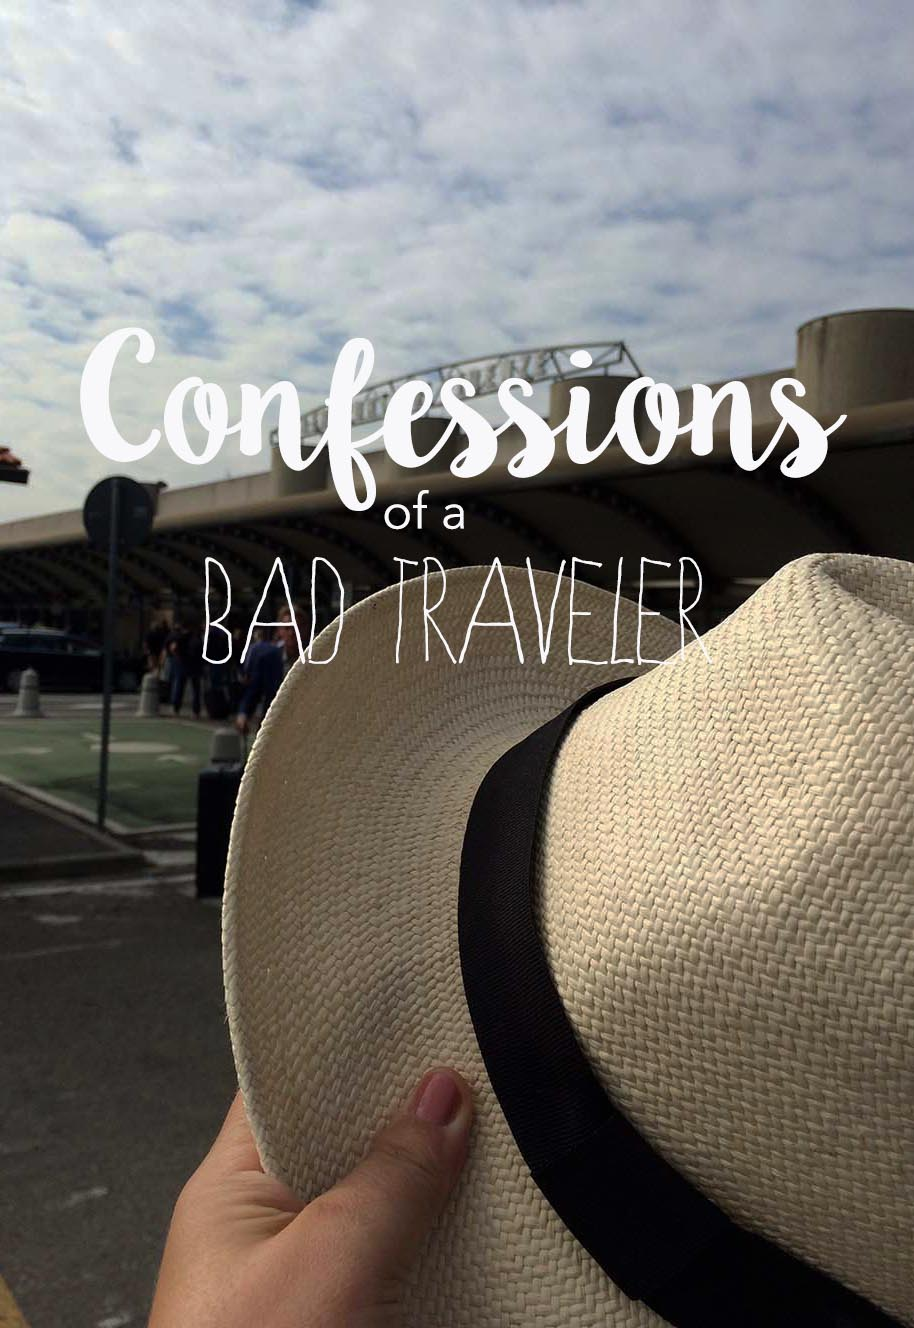 This post was inspired by Wandering Earl who recently questioned the honesty in travel blogging. Today I will admit to being a bad traveler - here is why.